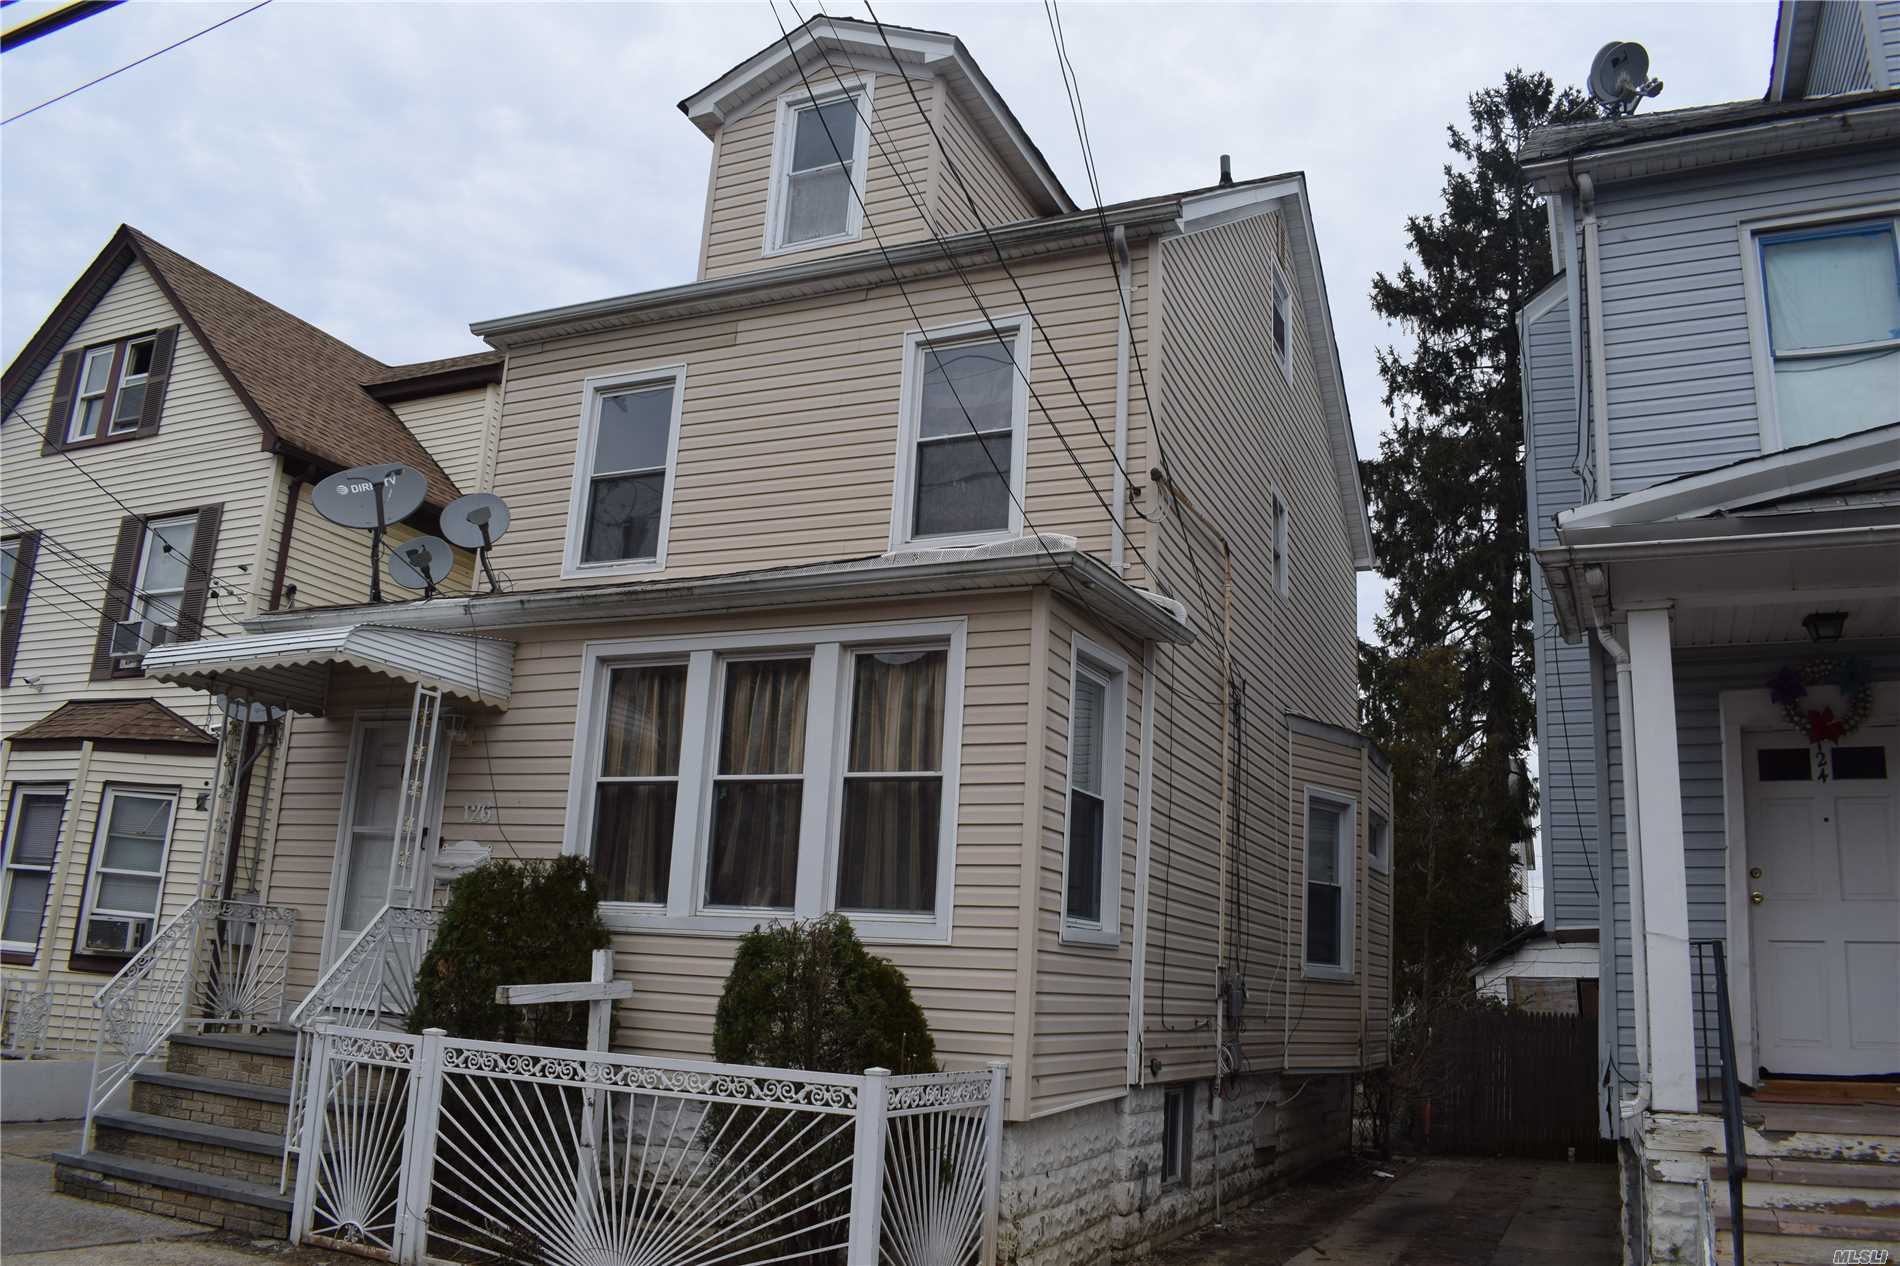 Great Opportunity To Own A One Family Colonial, 3Brs, 2 Bathrooms, Finished Attic, 1 Car Garage And Private Driveway. Walk To Downtown Hempstead Shopping, Schools, Trains And Buses.